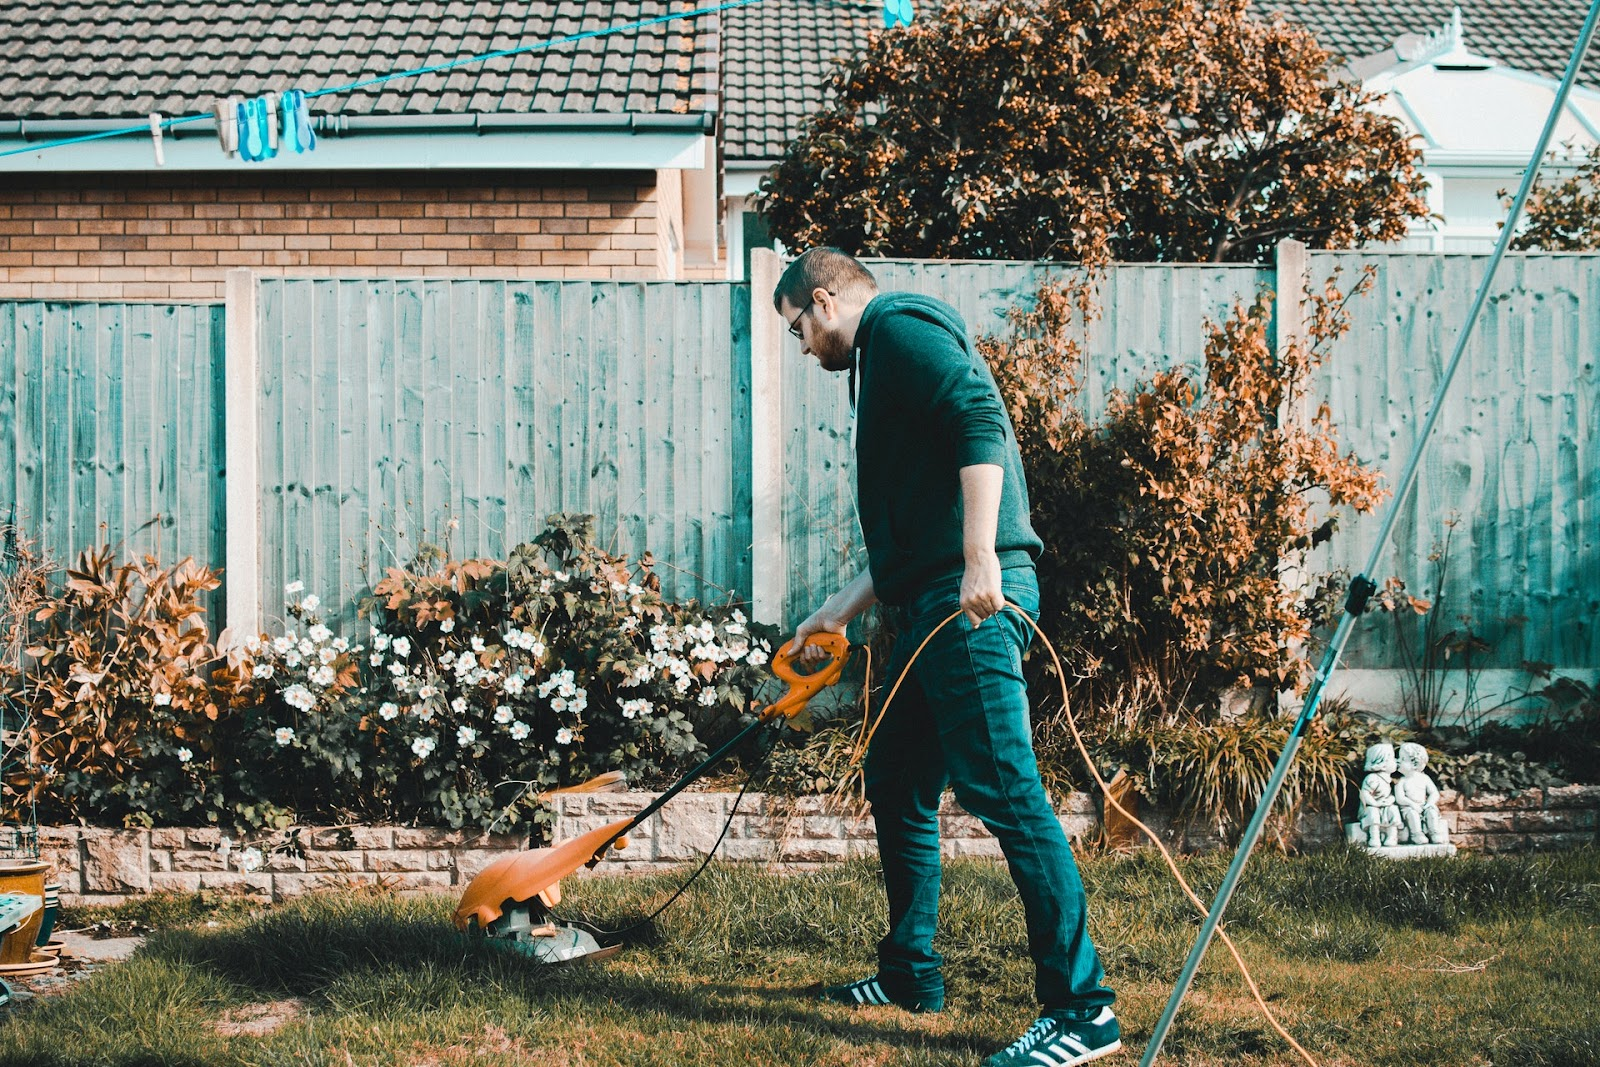 Man using a lawnmower to cut the grass while gardening.